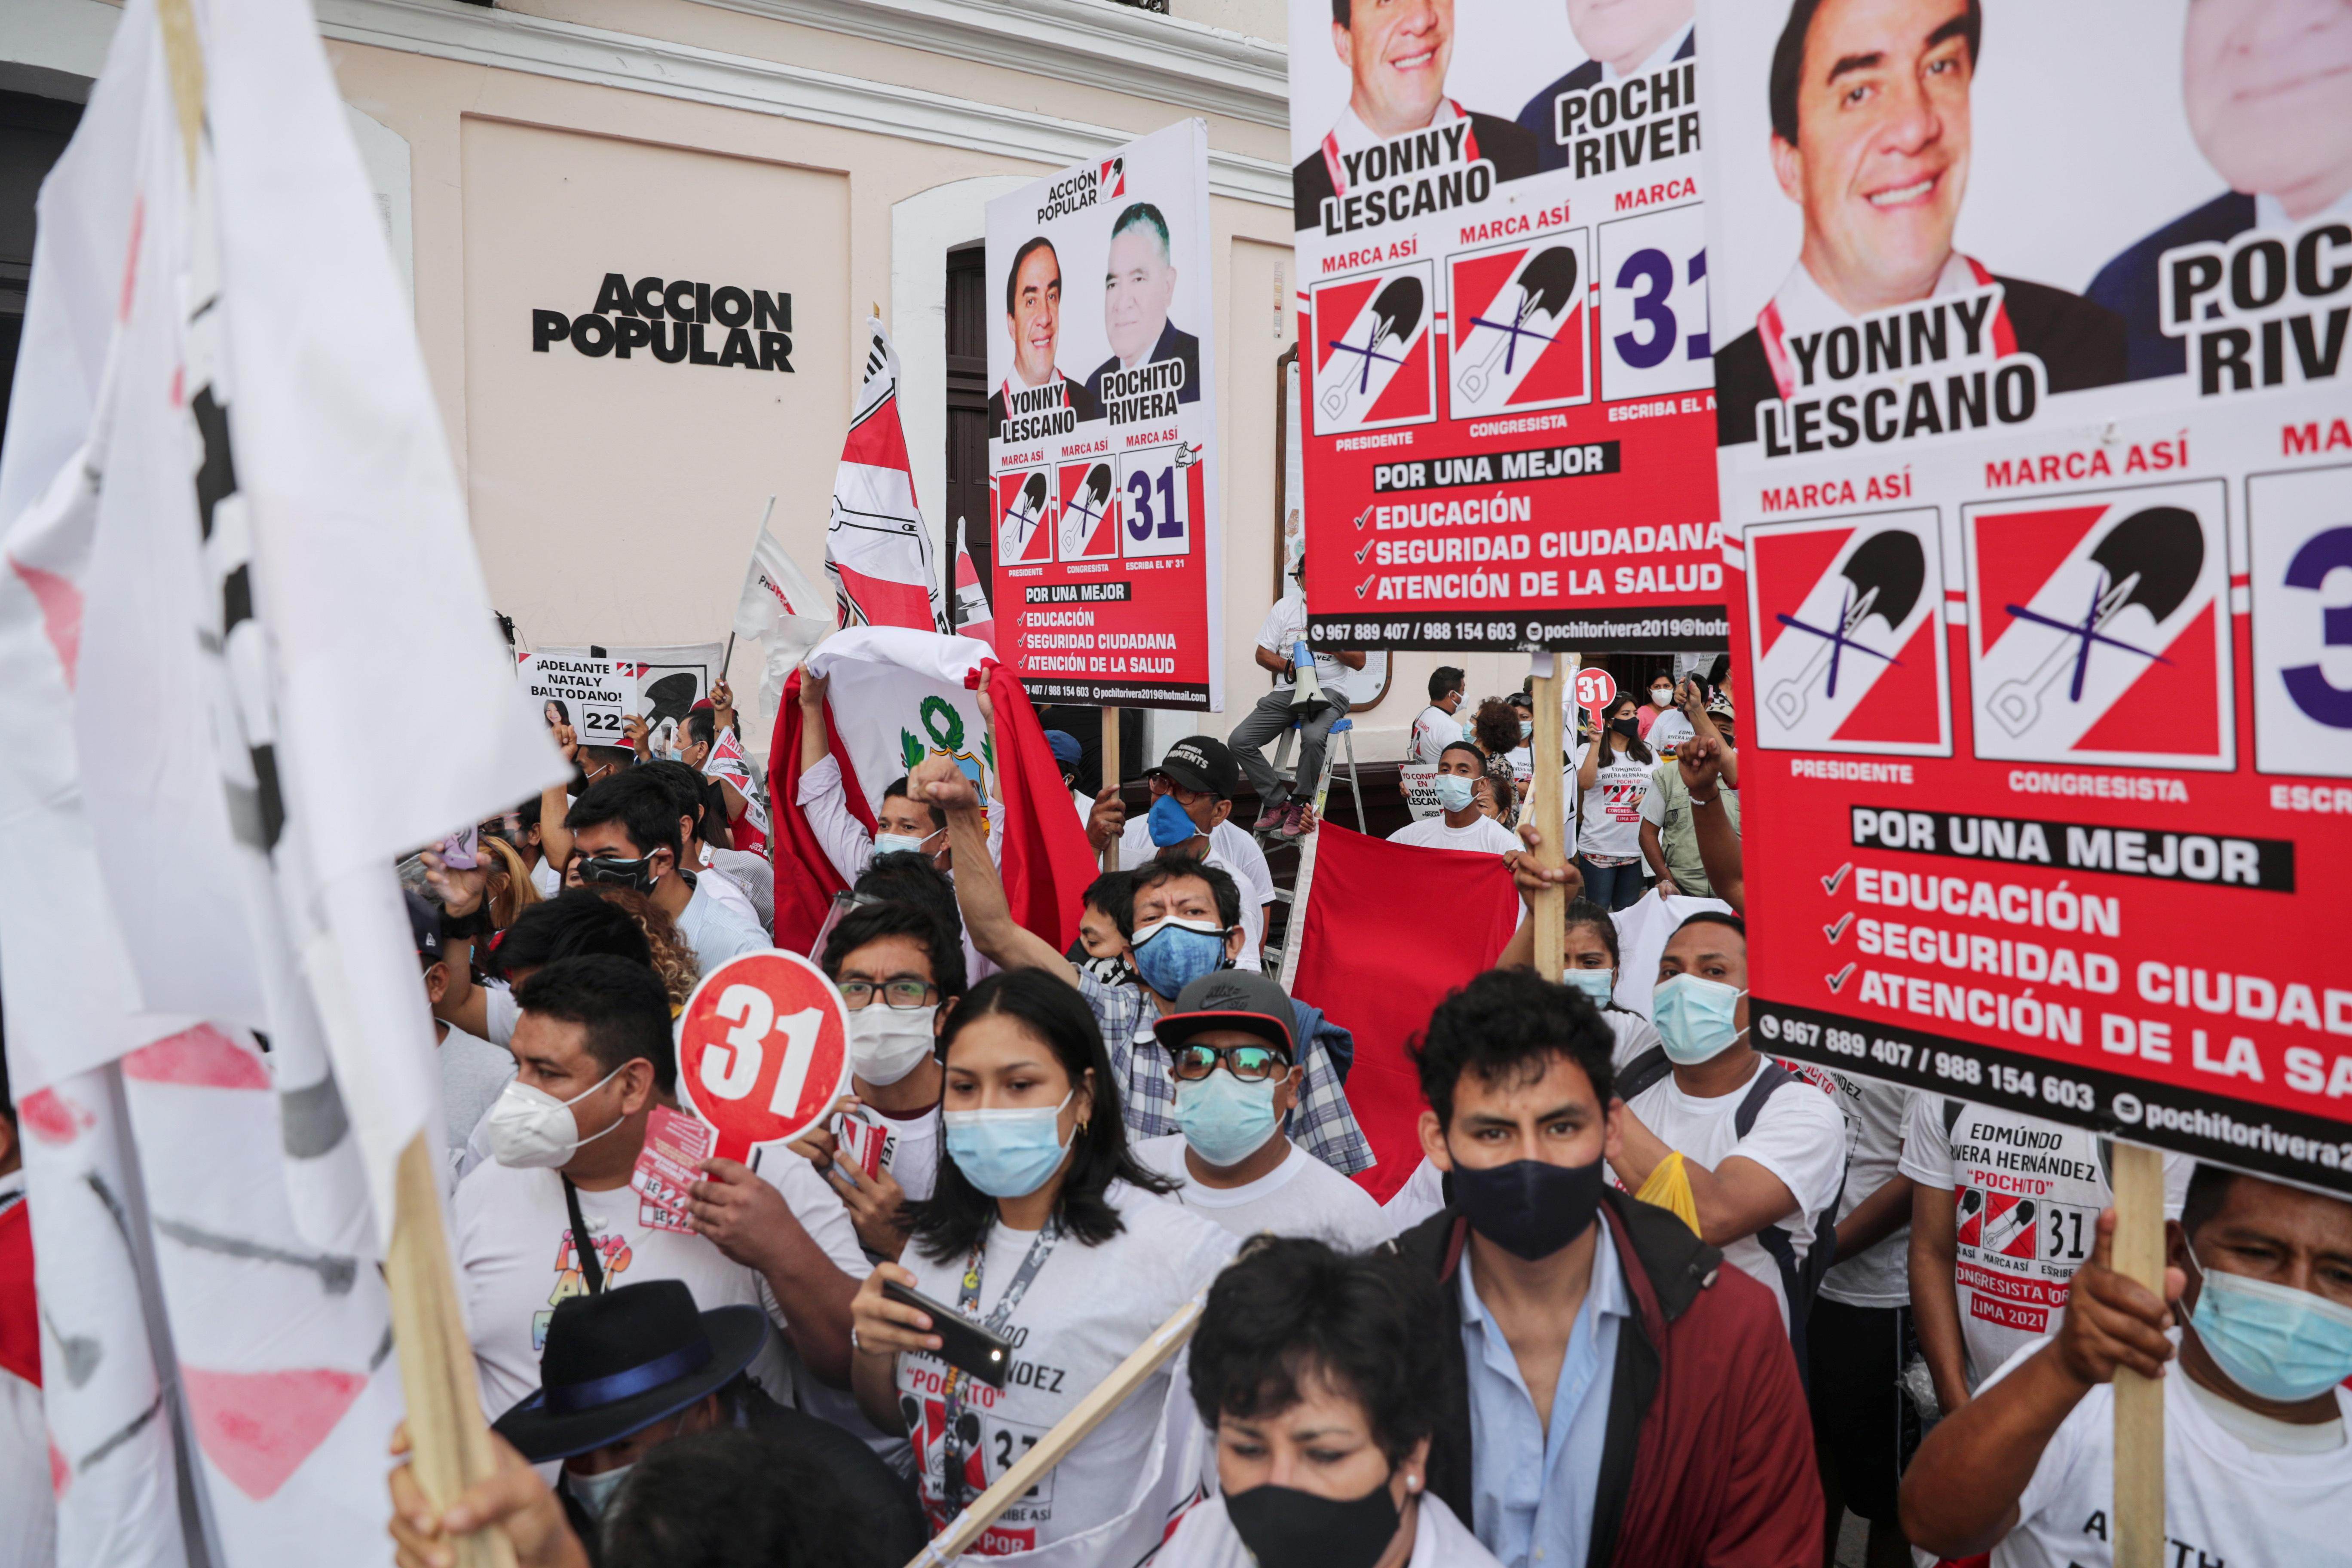 Peruvians head to polls with masks, pens and little excitement